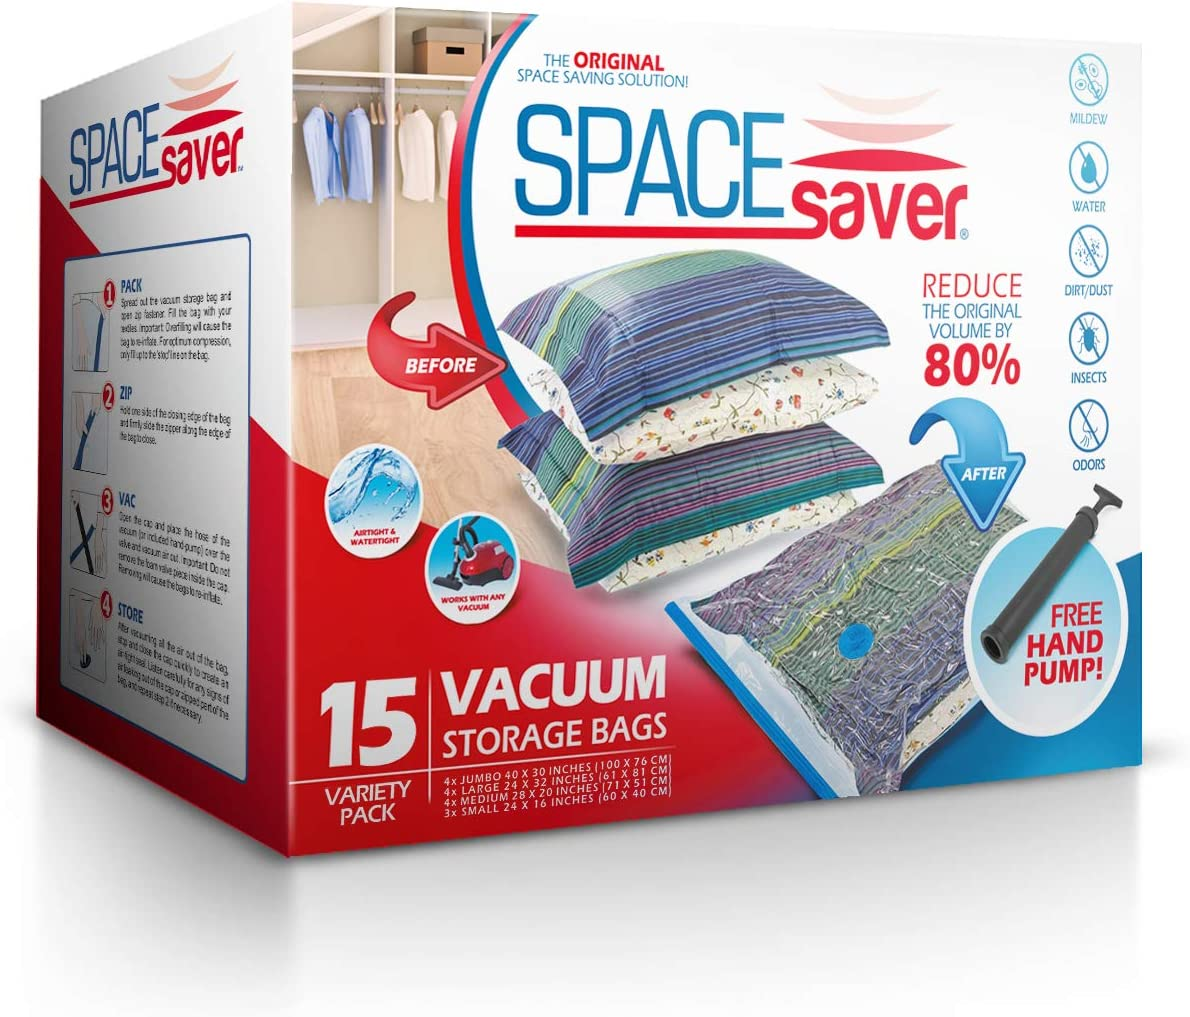 Spacesaver Premium Vacuum Storage Bags (3 x Small, 4 x Medium, 4 x Large, 4 x Jumbo) (80% More Storage Than Leading Brands) Free Hand Pump for Travel! (Variety 15 Pack)